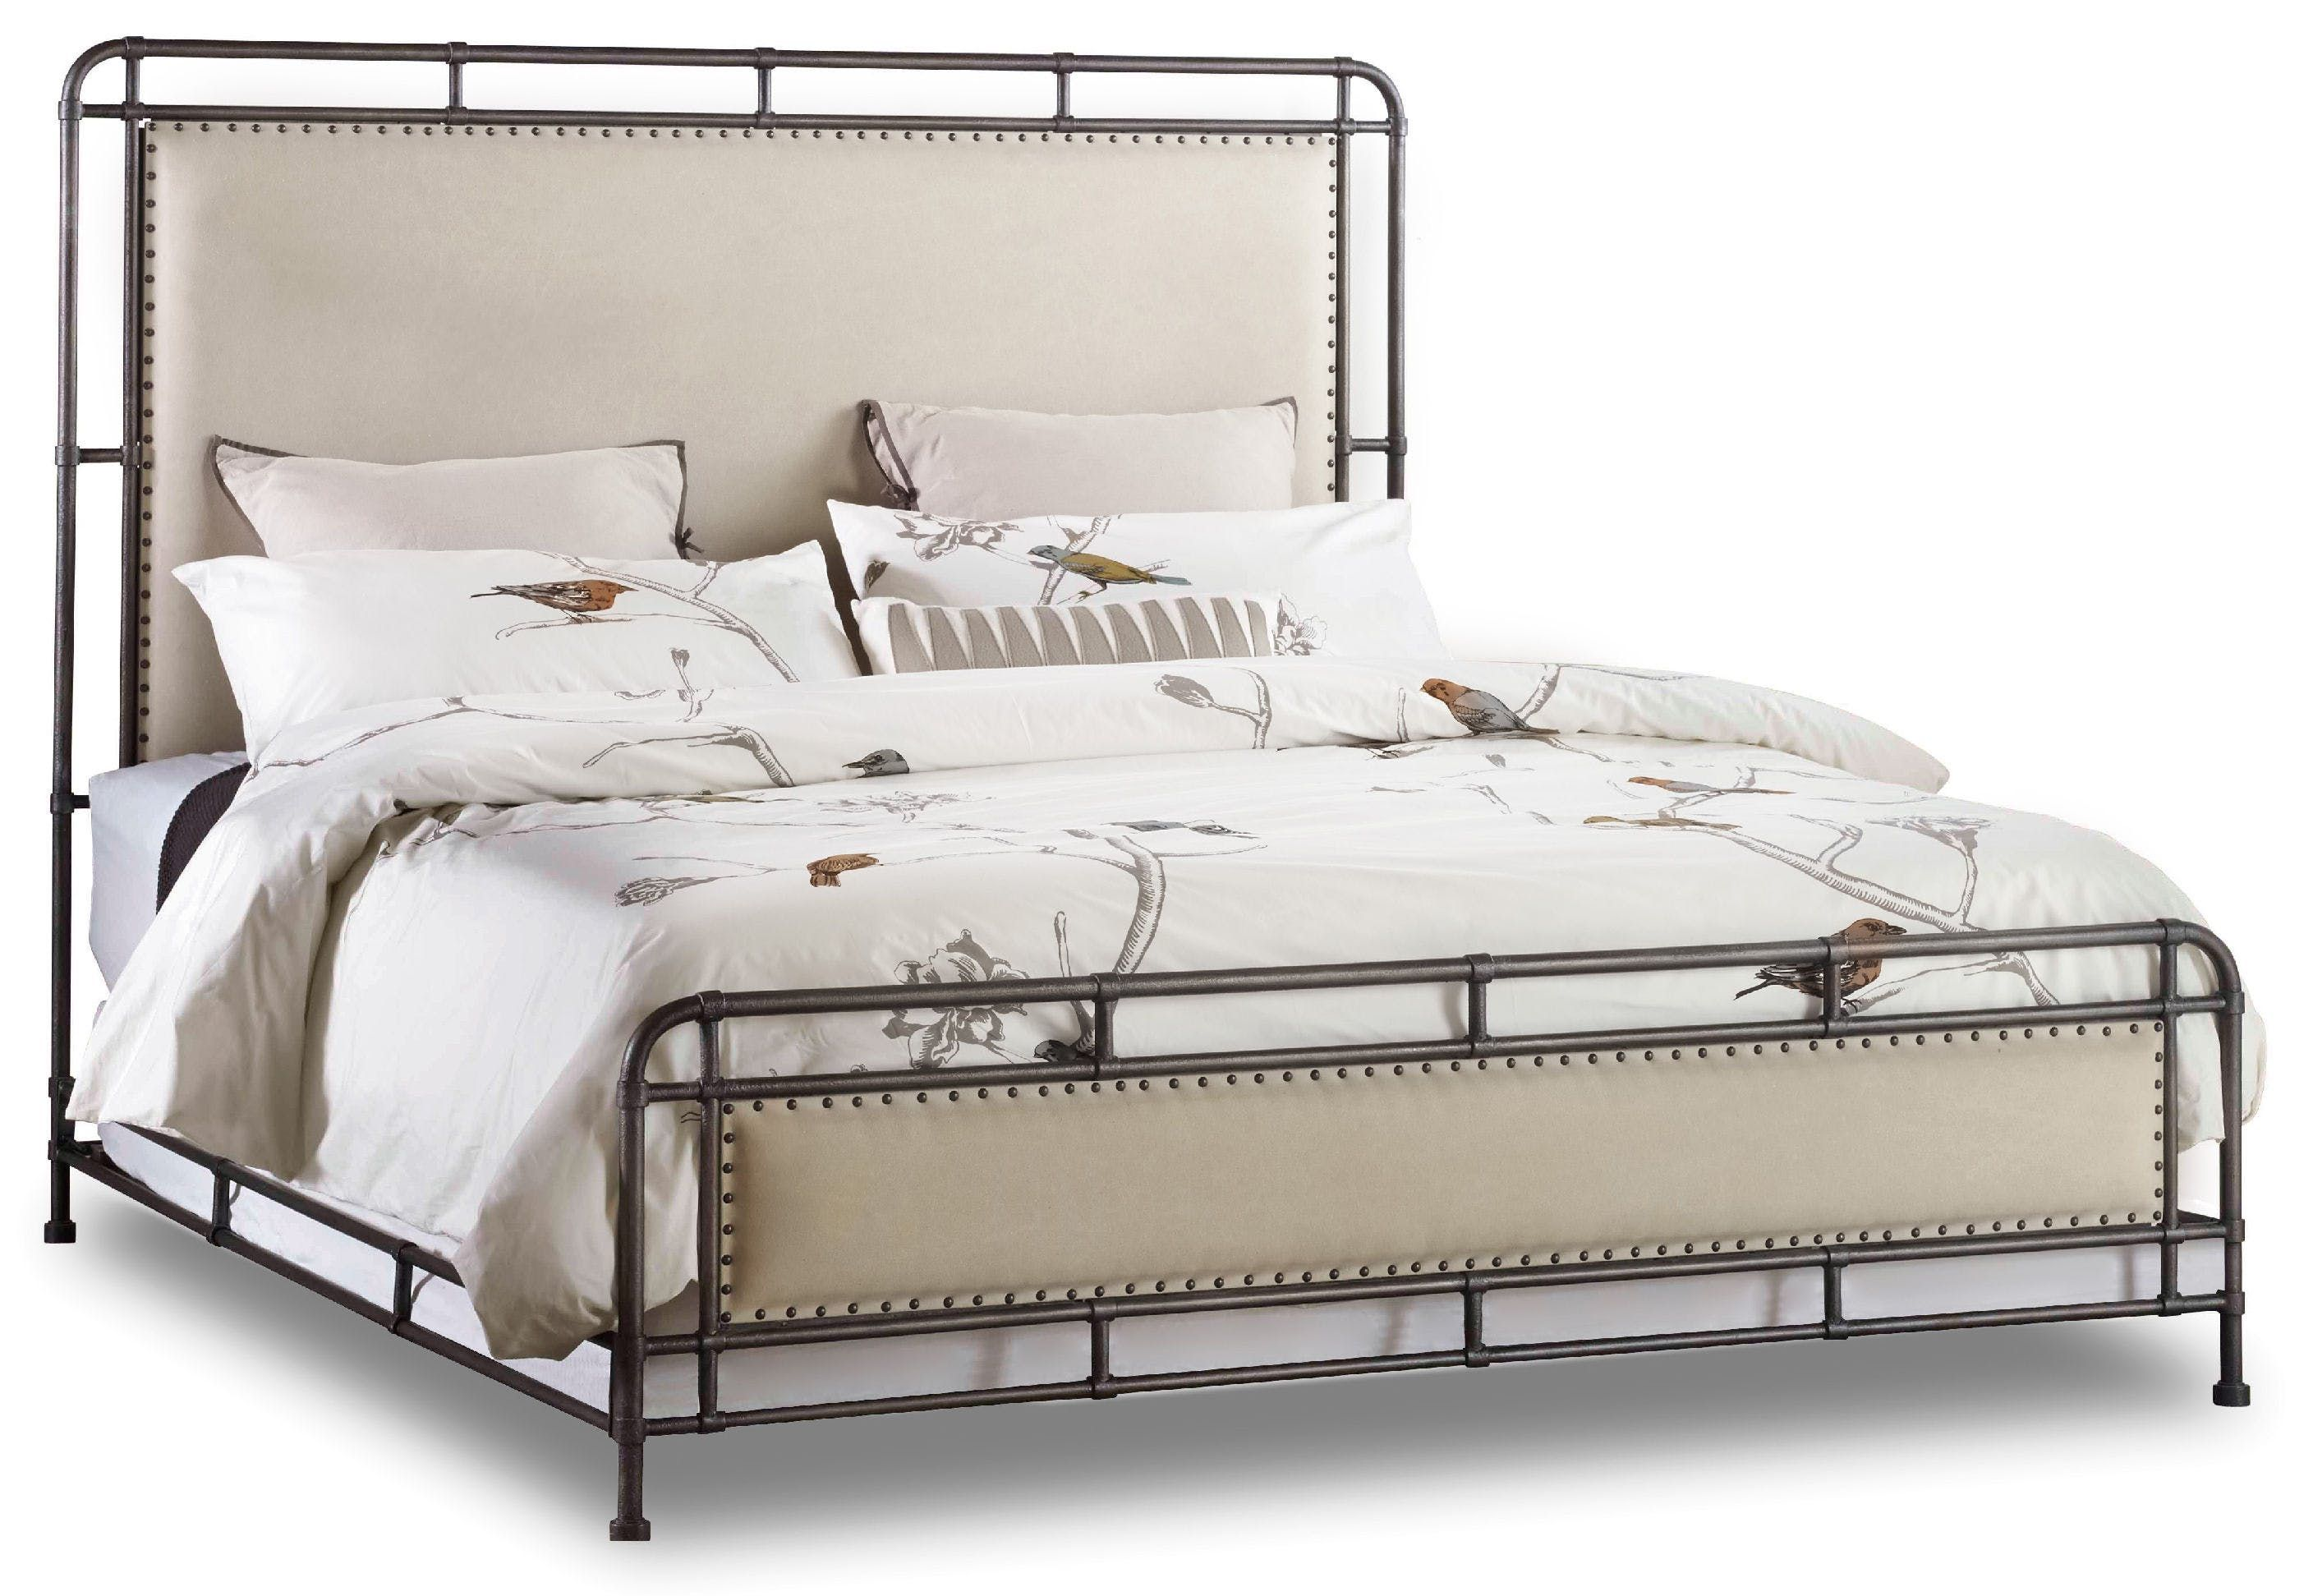 frame the king frames iron s crafted wrought sleigh look your mandalay silhouette of footboard headboard metal with bed pin